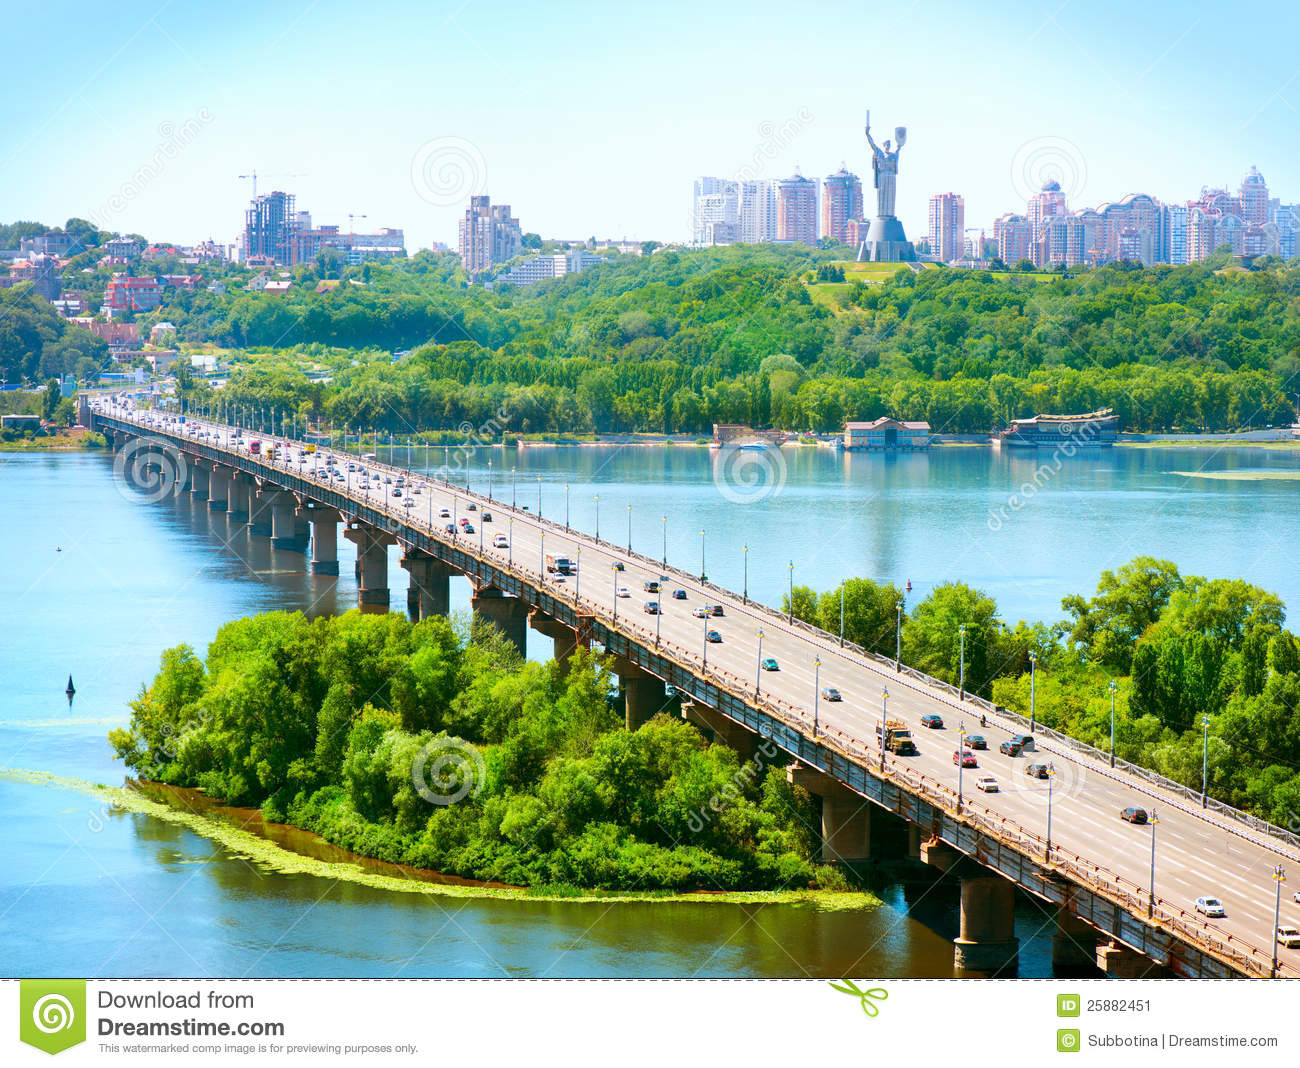 Kiev City - the capital of Ukraine